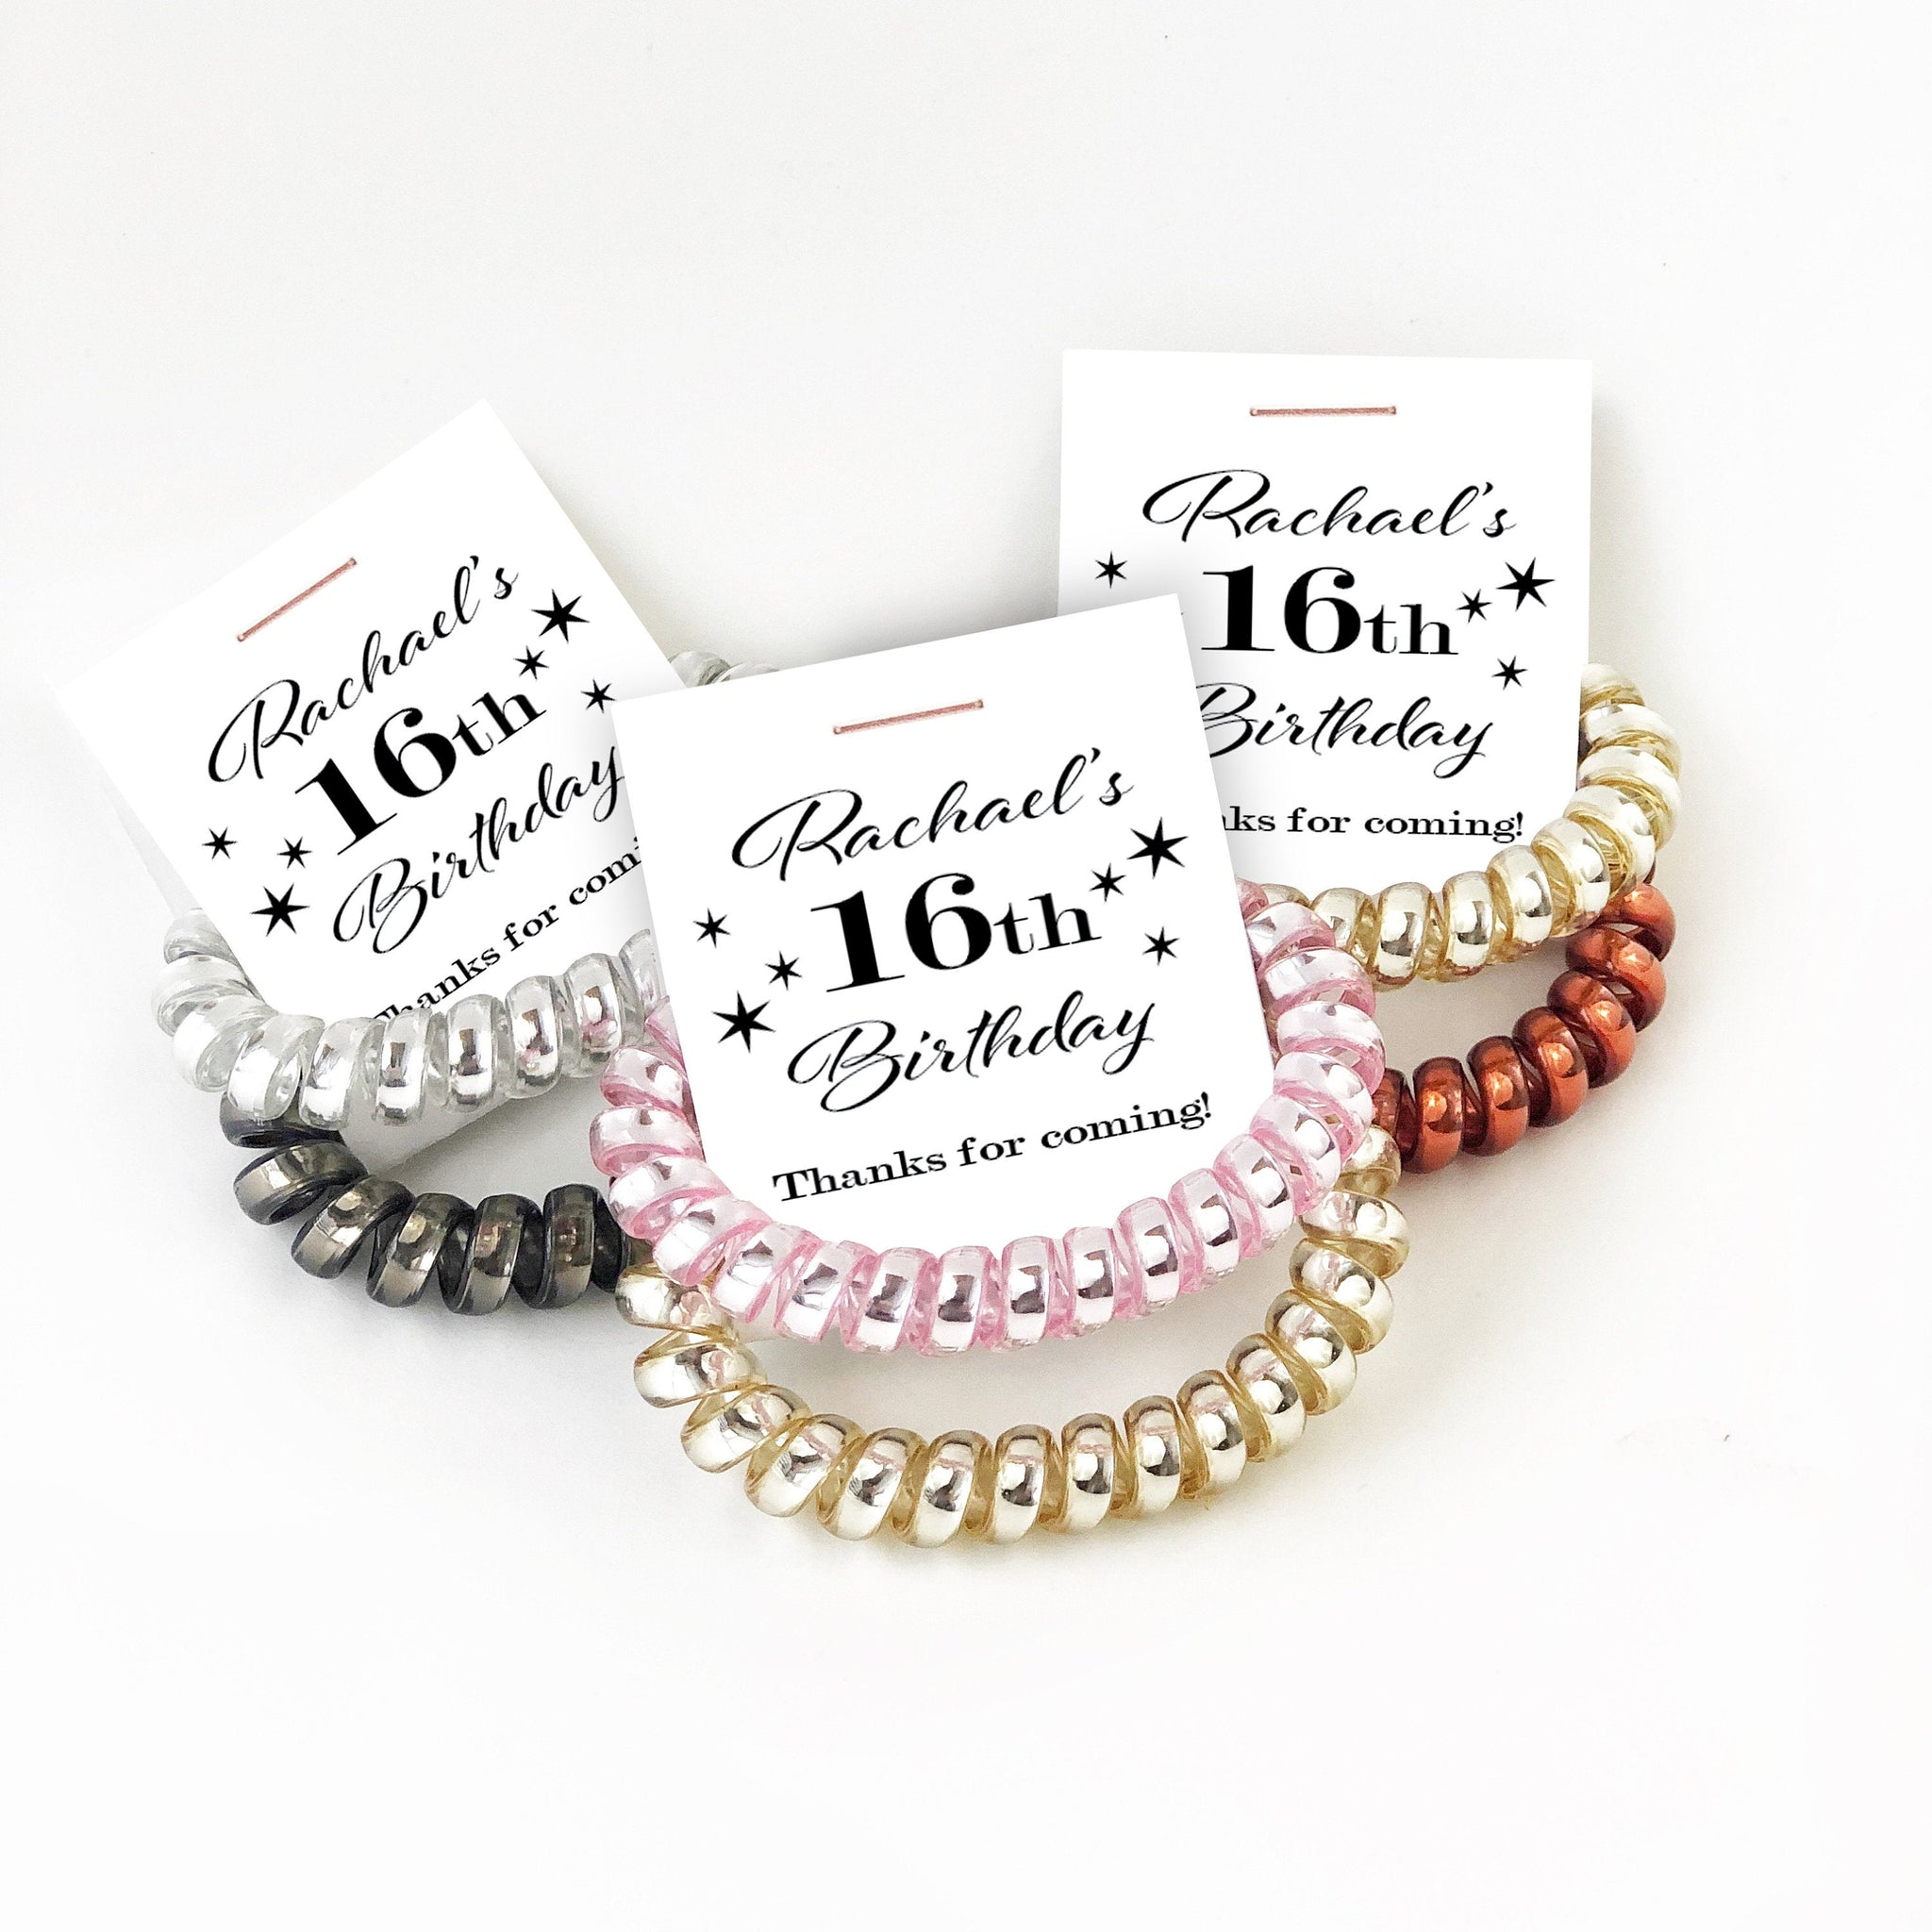 16th Birthday Party Favors, Spiral Hair Ties - @PlumPolkaDot